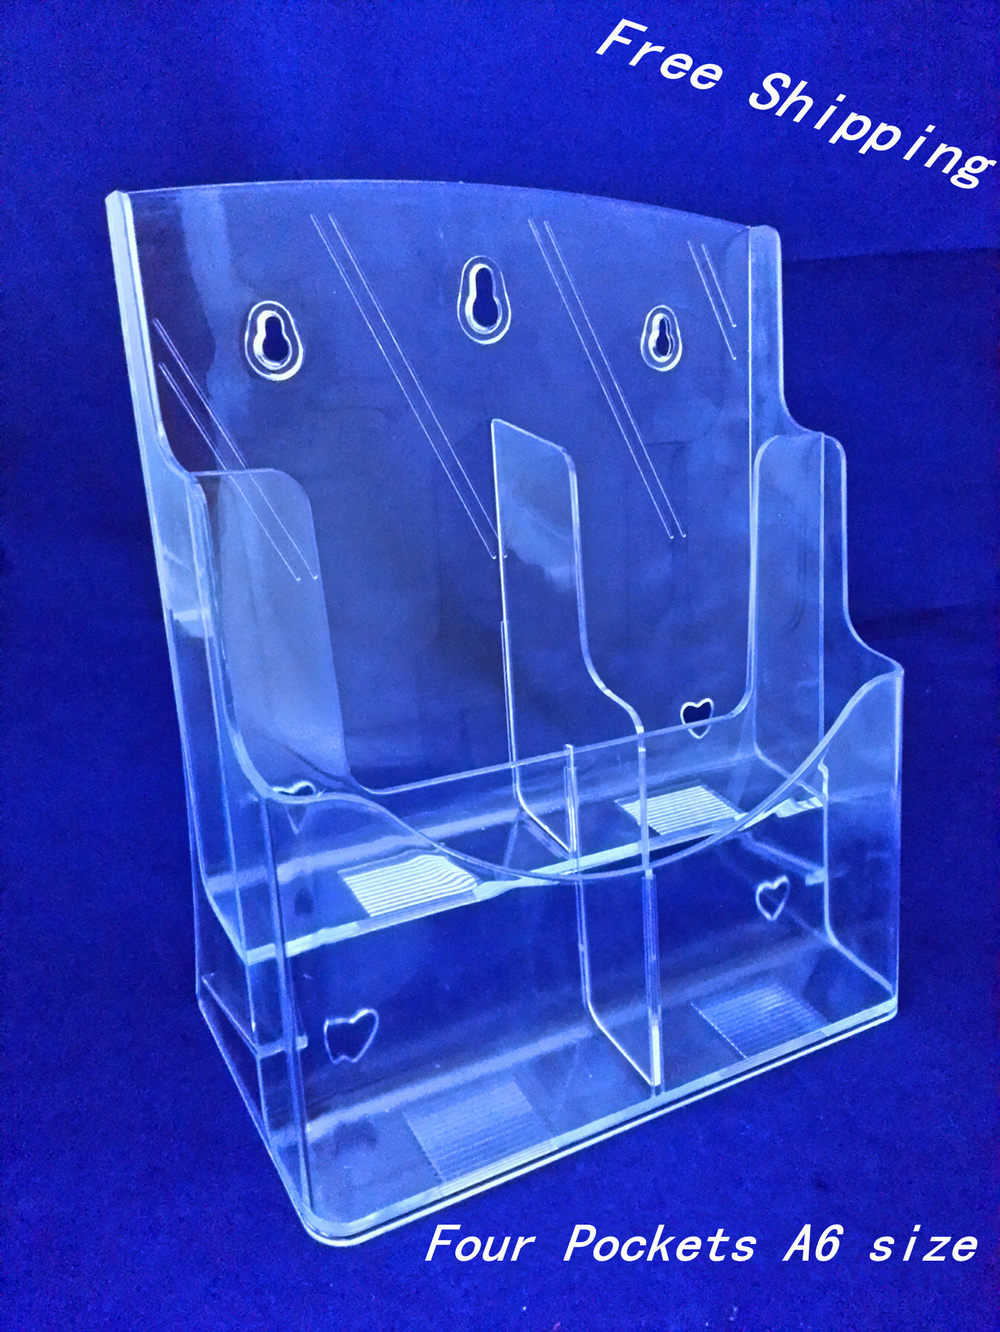 Clear A6 Four Pockets Plastic Brochure Literature Display Holder Racks Stand To Insert Leaflet On DesktopClear A6 Four Pockets Plastic Brochure Literature Display Holder Racks Stand To Insert Leaflet On Desktop